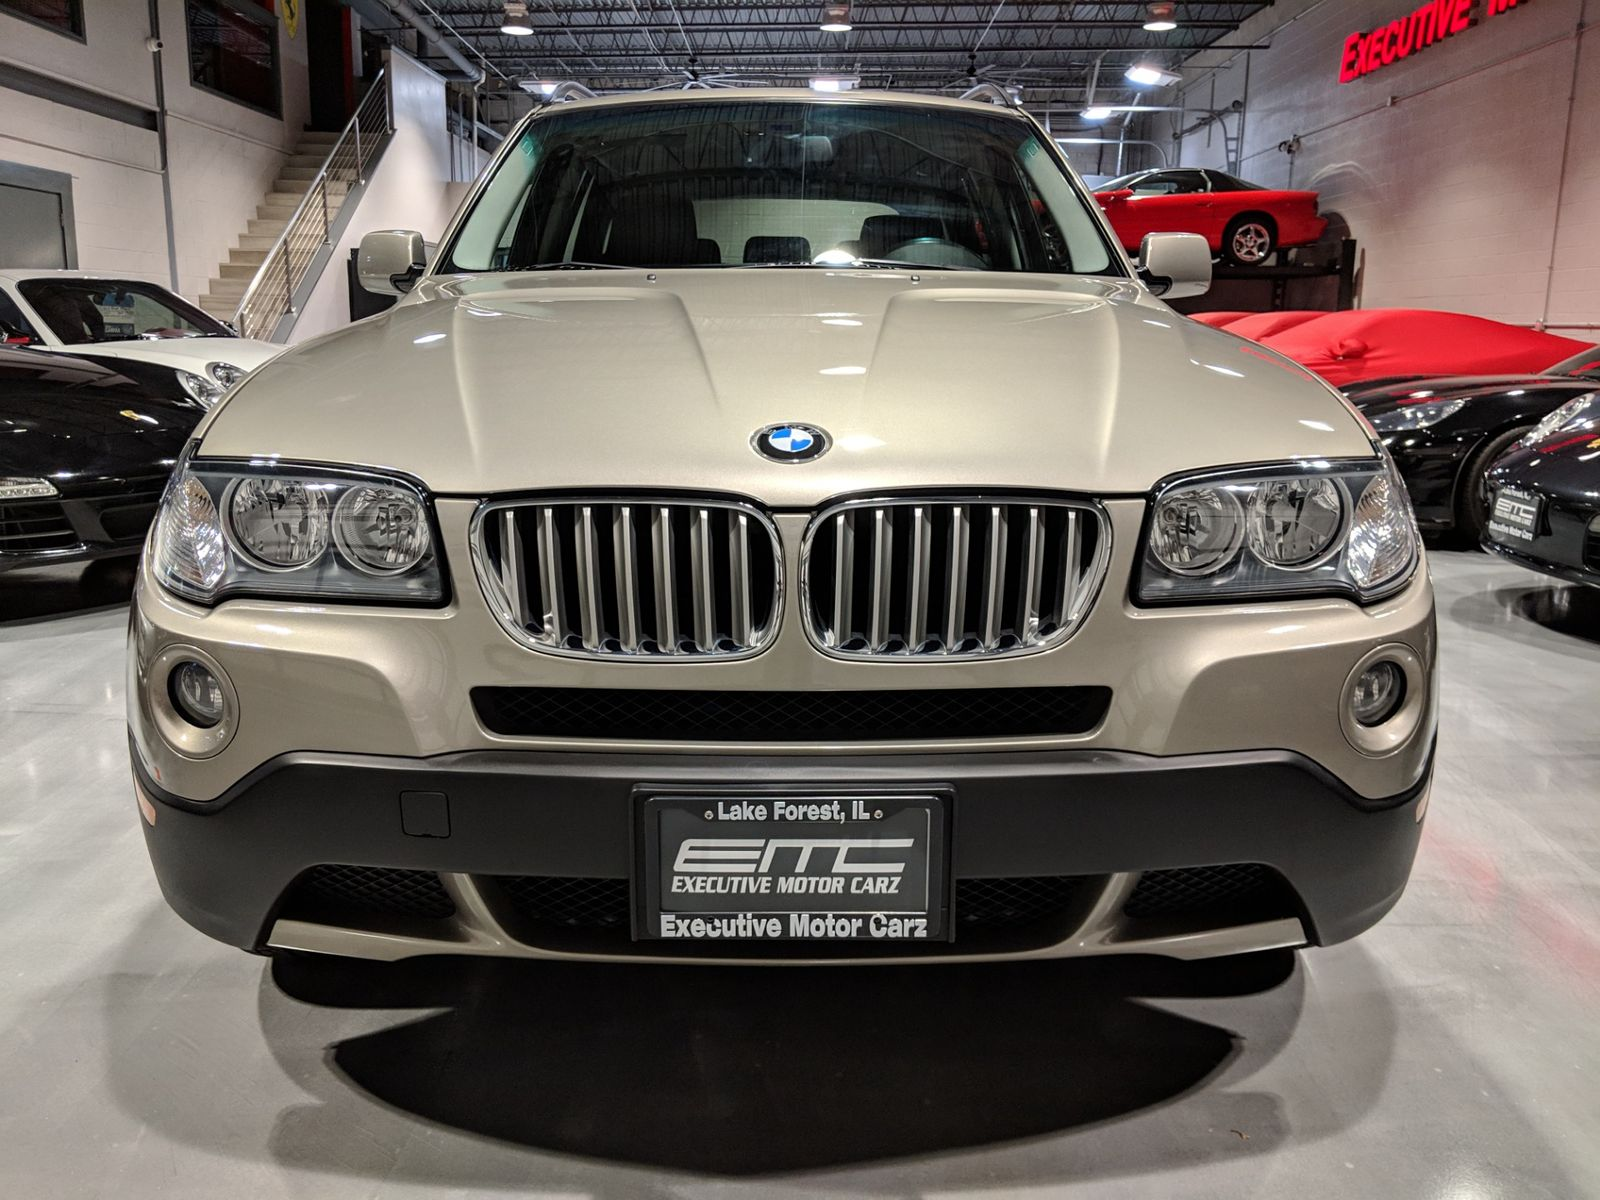 2007 bmw x3 30si lake forest il executive motor carz. Black Bedroom Furniture Sets. Home Design Ideas